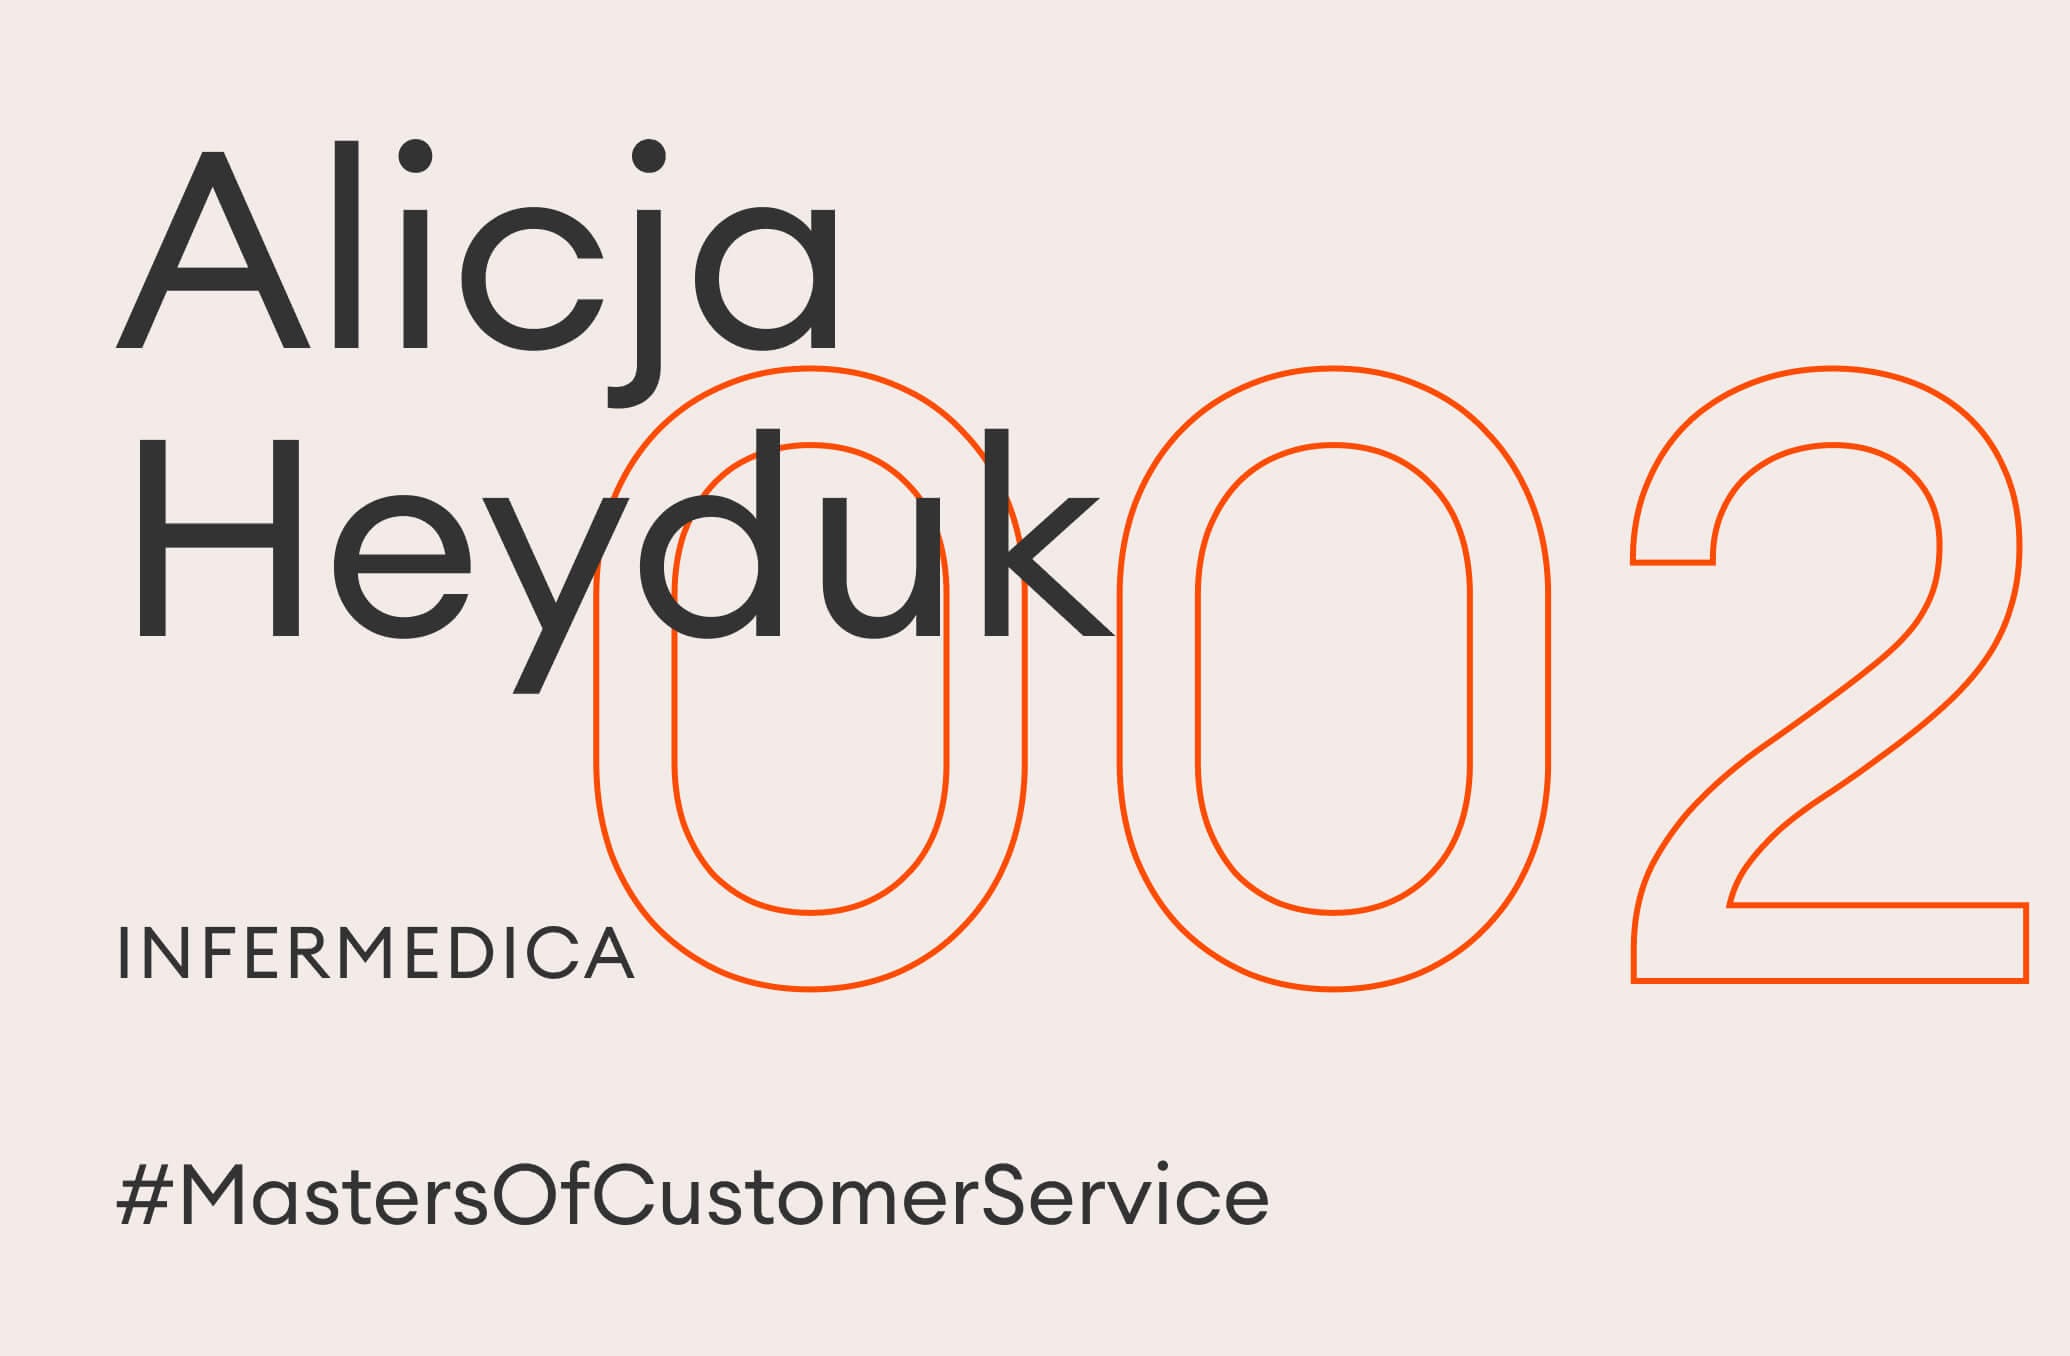 alicja heyduk master of customer service